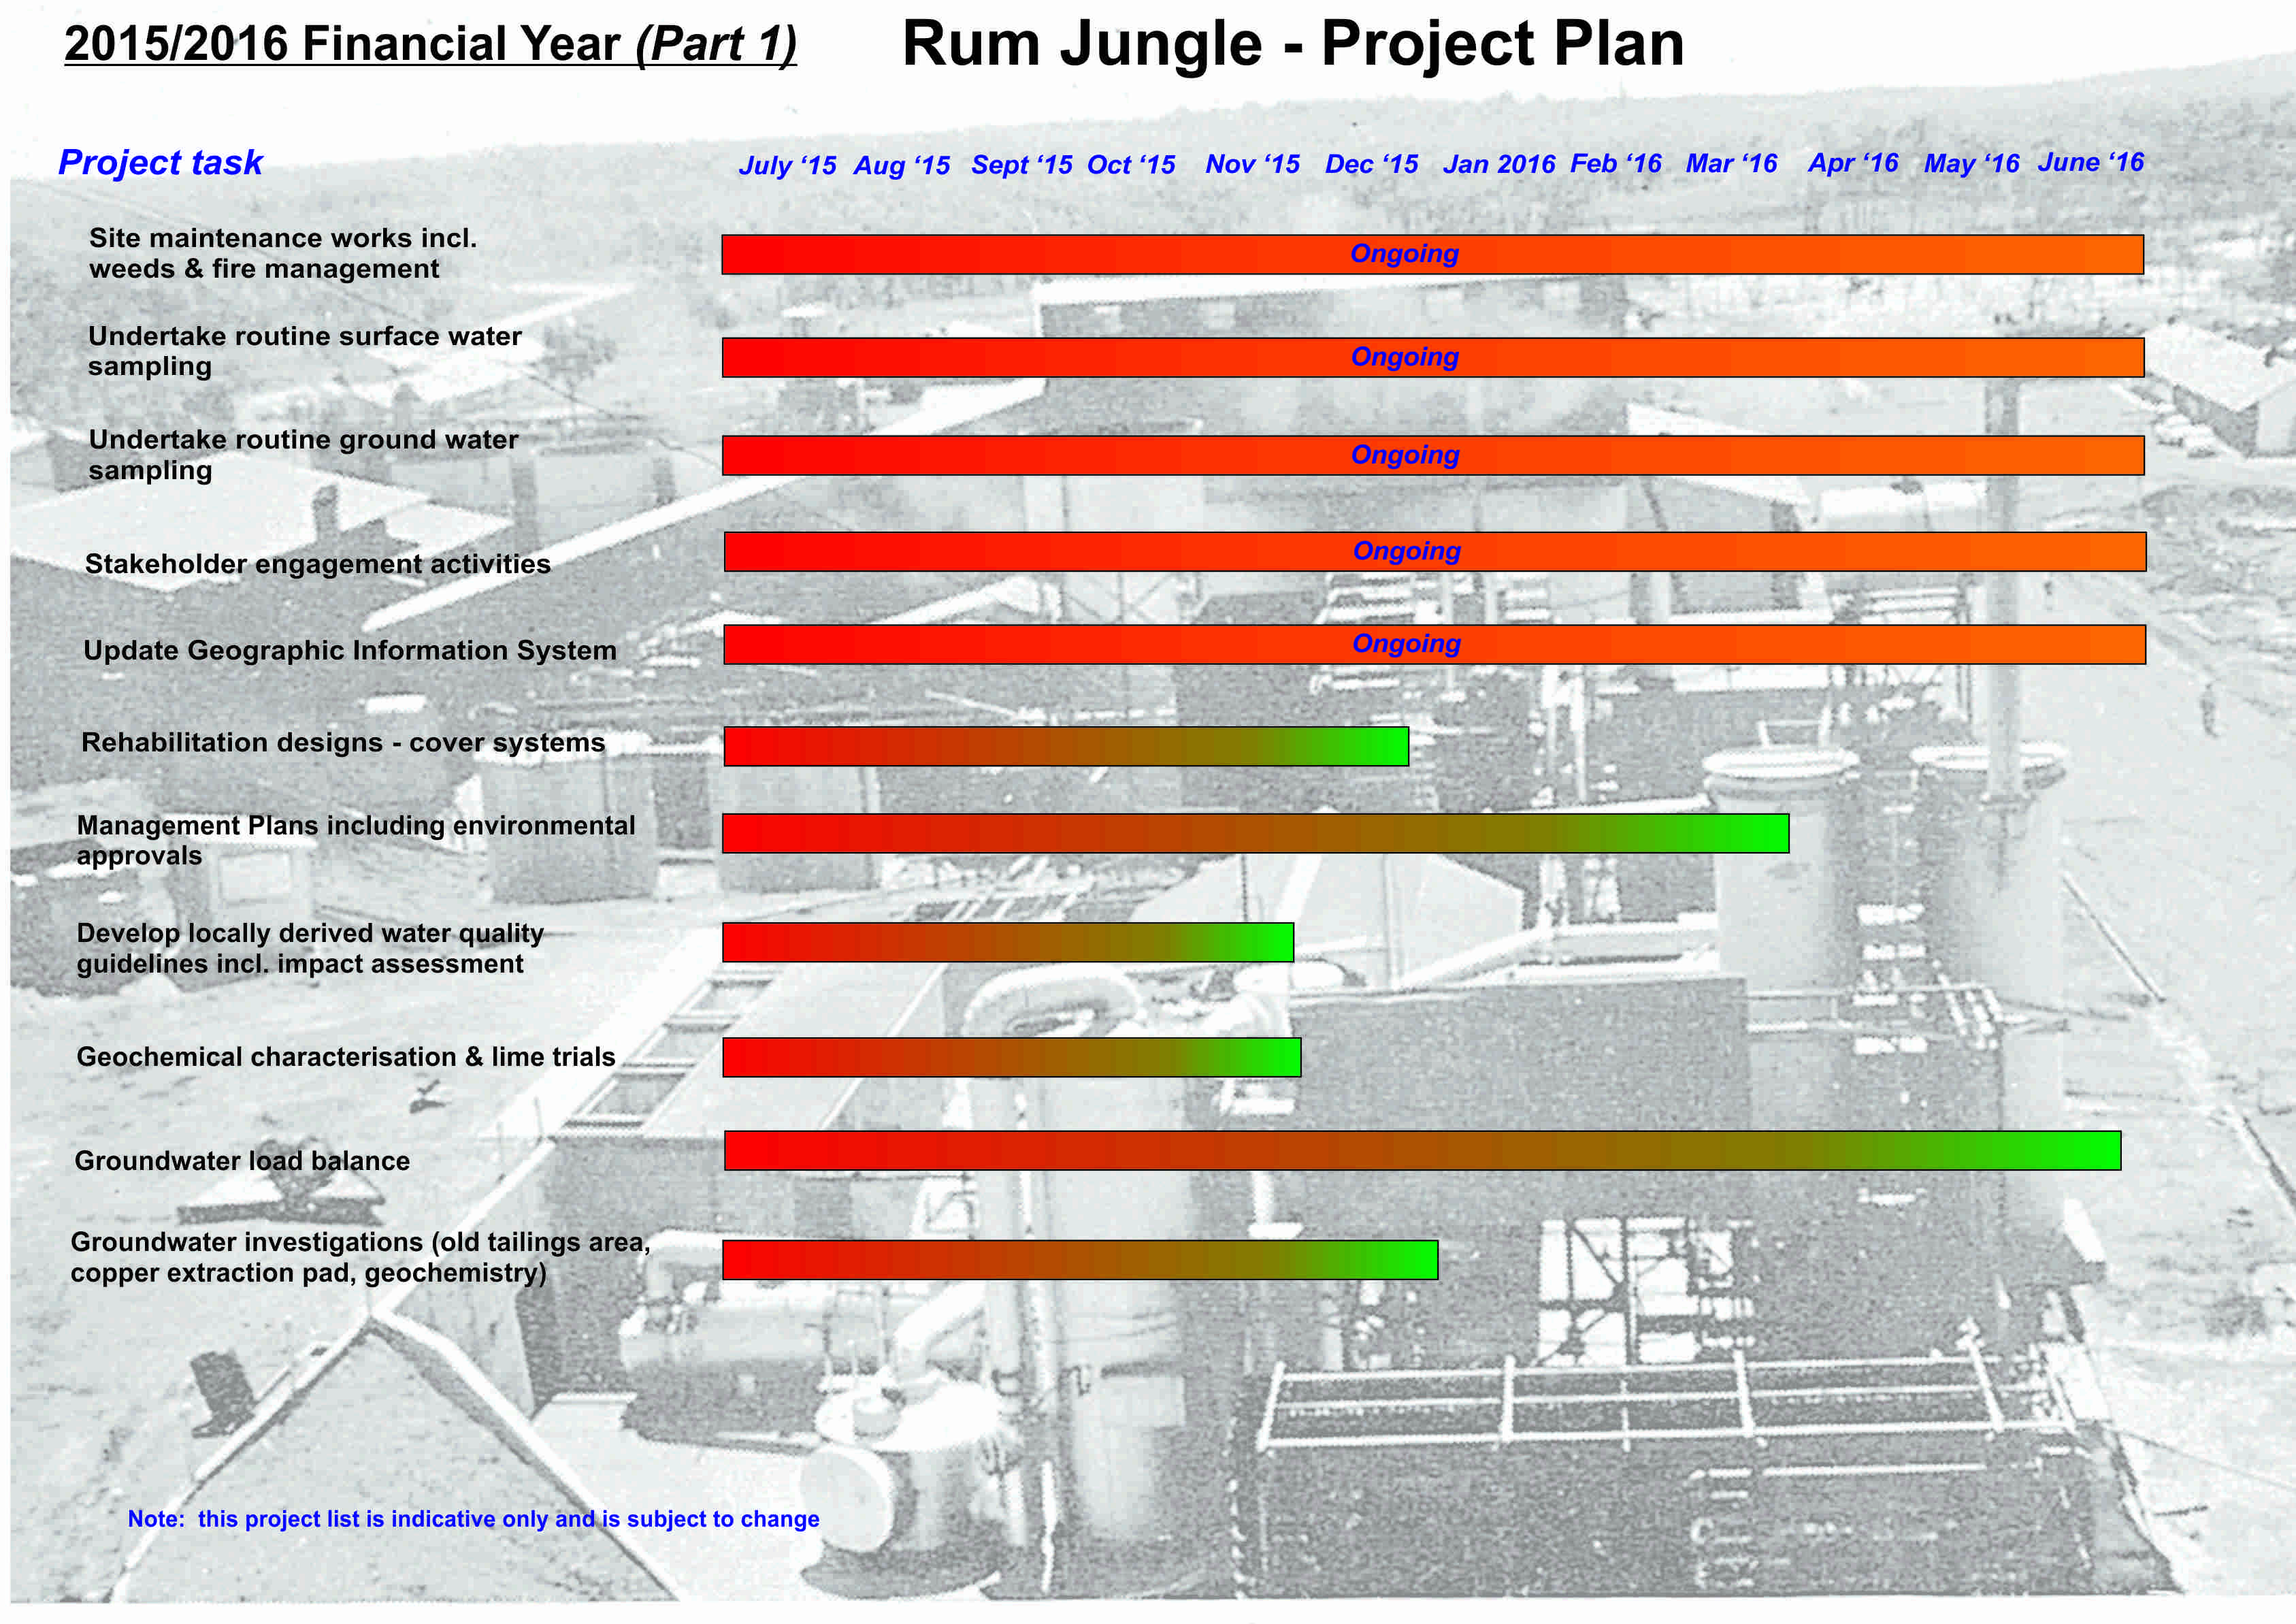 project plan 15-16 (part 1)